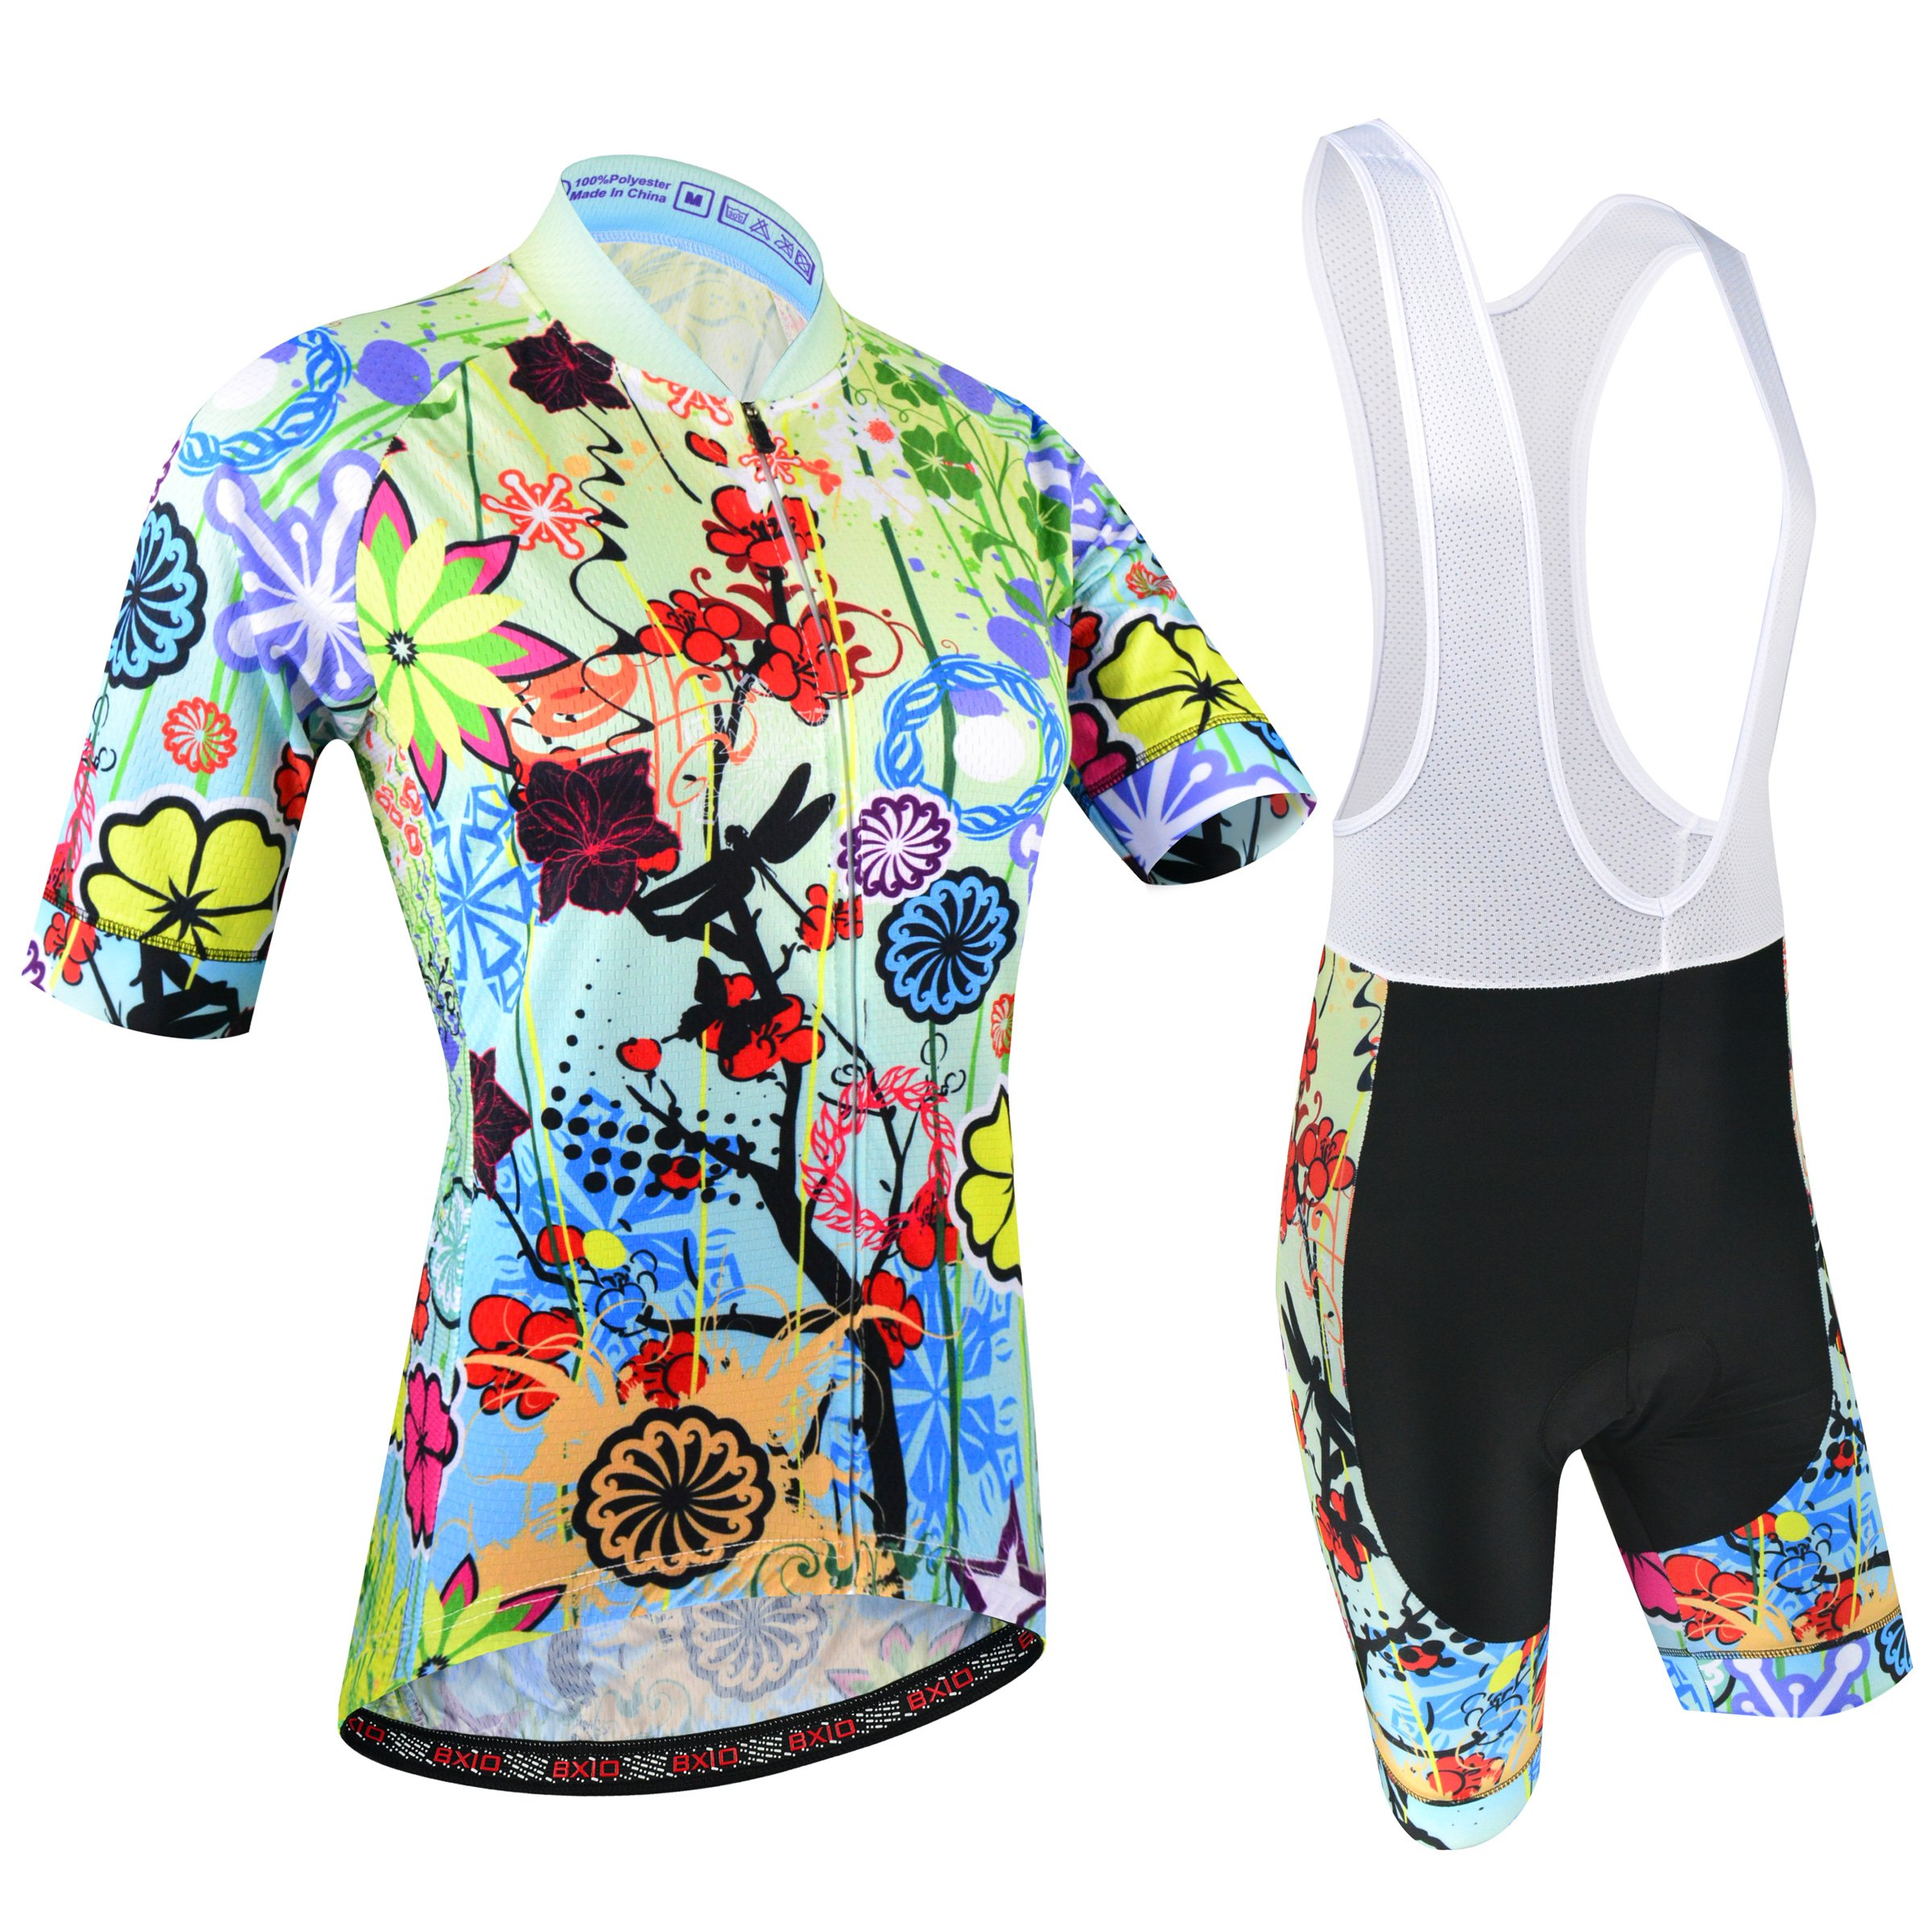 BXIO Women Cycling Clothing with Bib Shorts Double Lycra Flat Stitching for Cuff of Sleeve and Shorts End Pro Cycling Jersey 187 (Short Sleeve and bib Shorts, S)